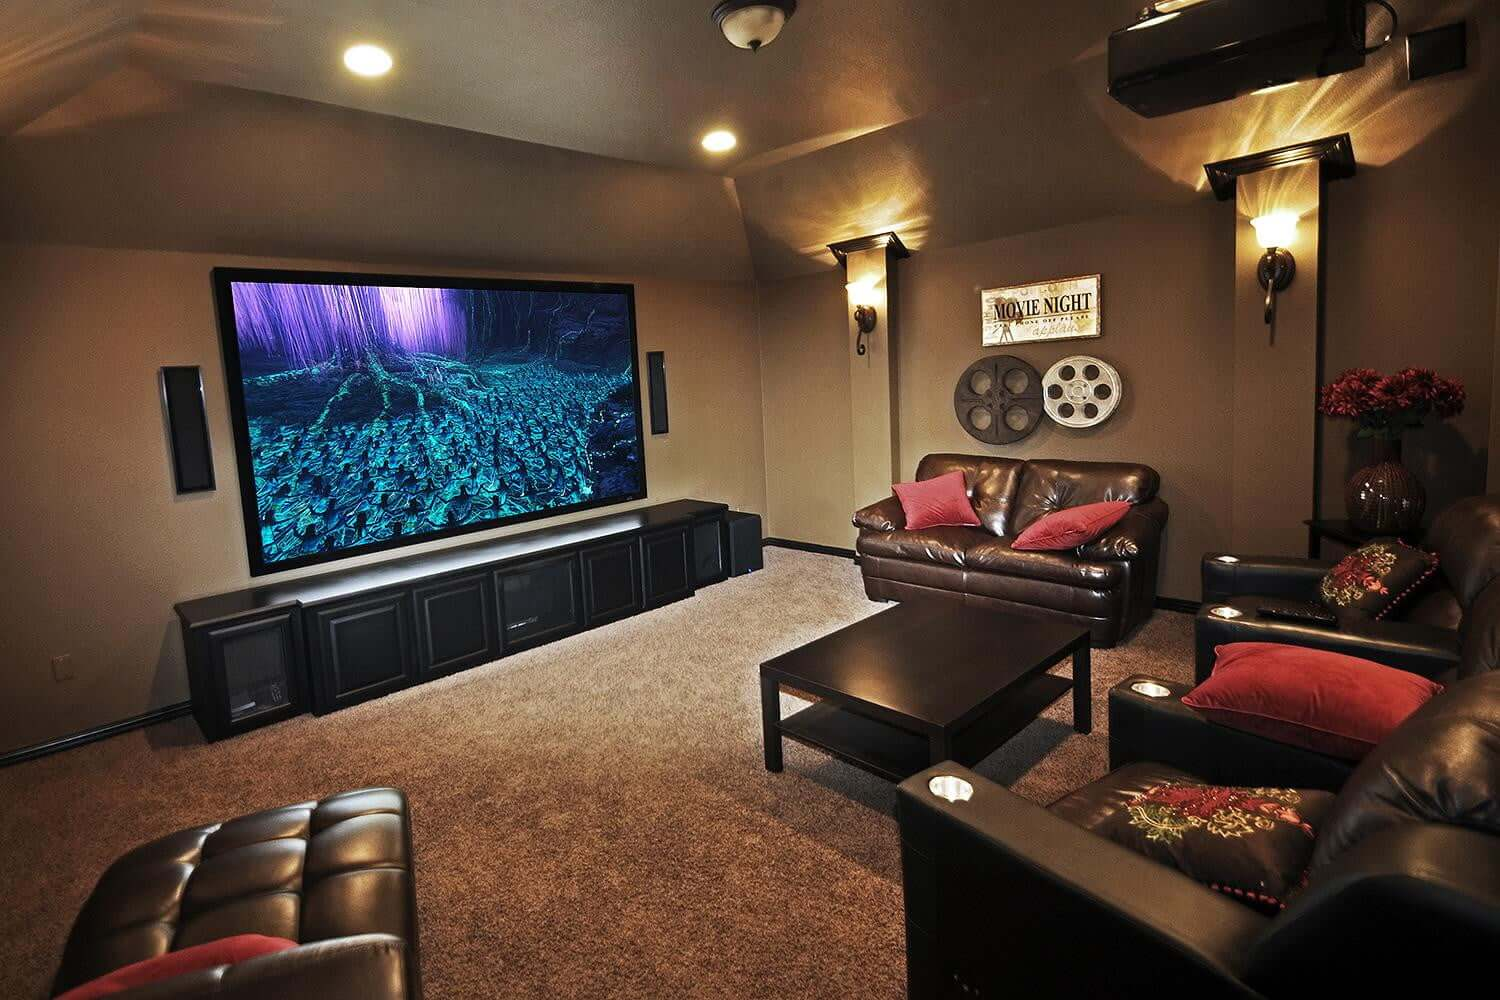 Projector Screens The 6 Best Huge Home Theatre Movie Screens Improb